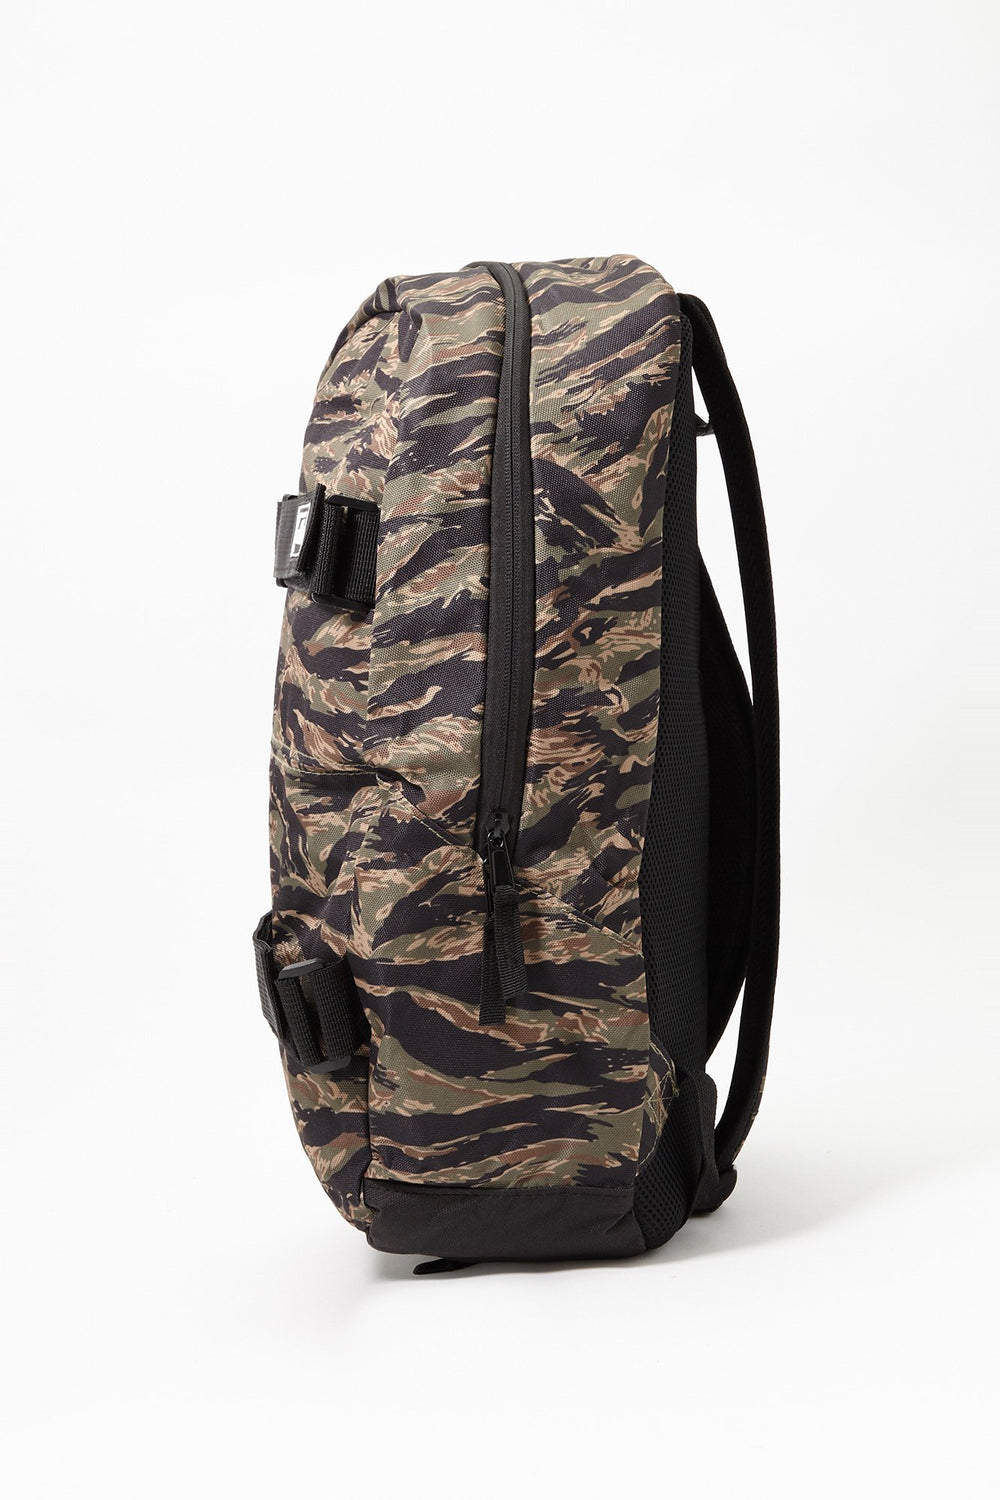 Sac À Dos Imprimé Camouflage Young & Reckless Camoufle